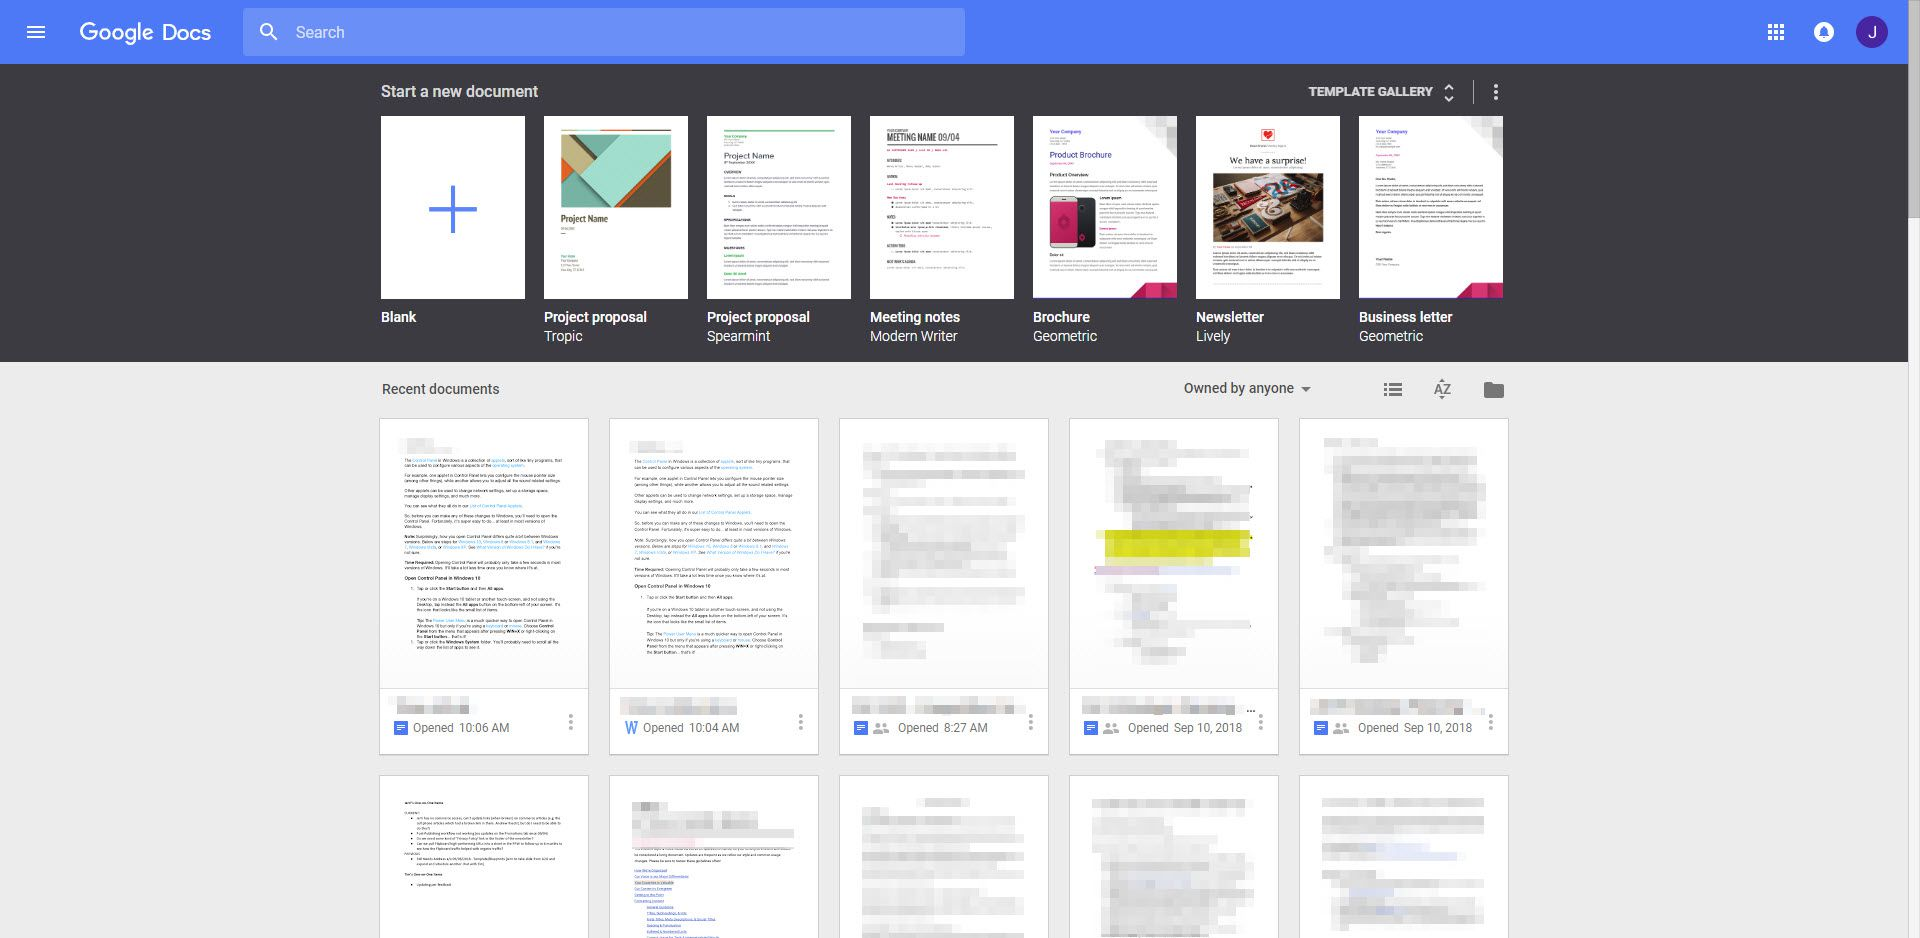 Learn About Google Docs - Google docs word processor